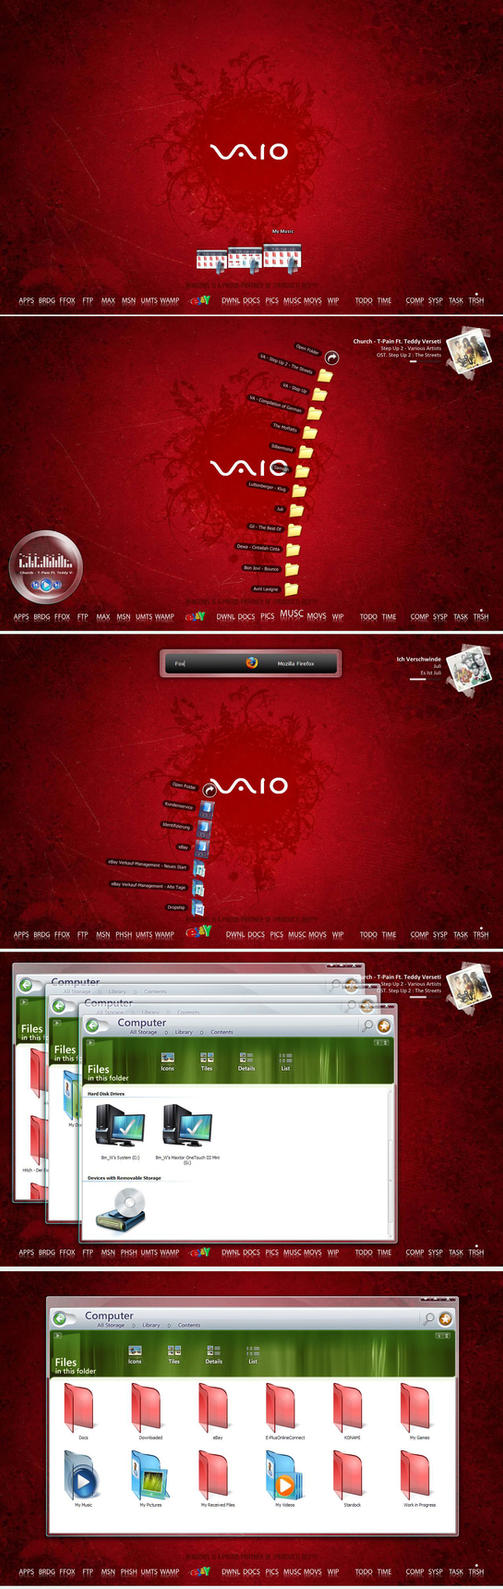 vaio red wallpaper by - photo #24